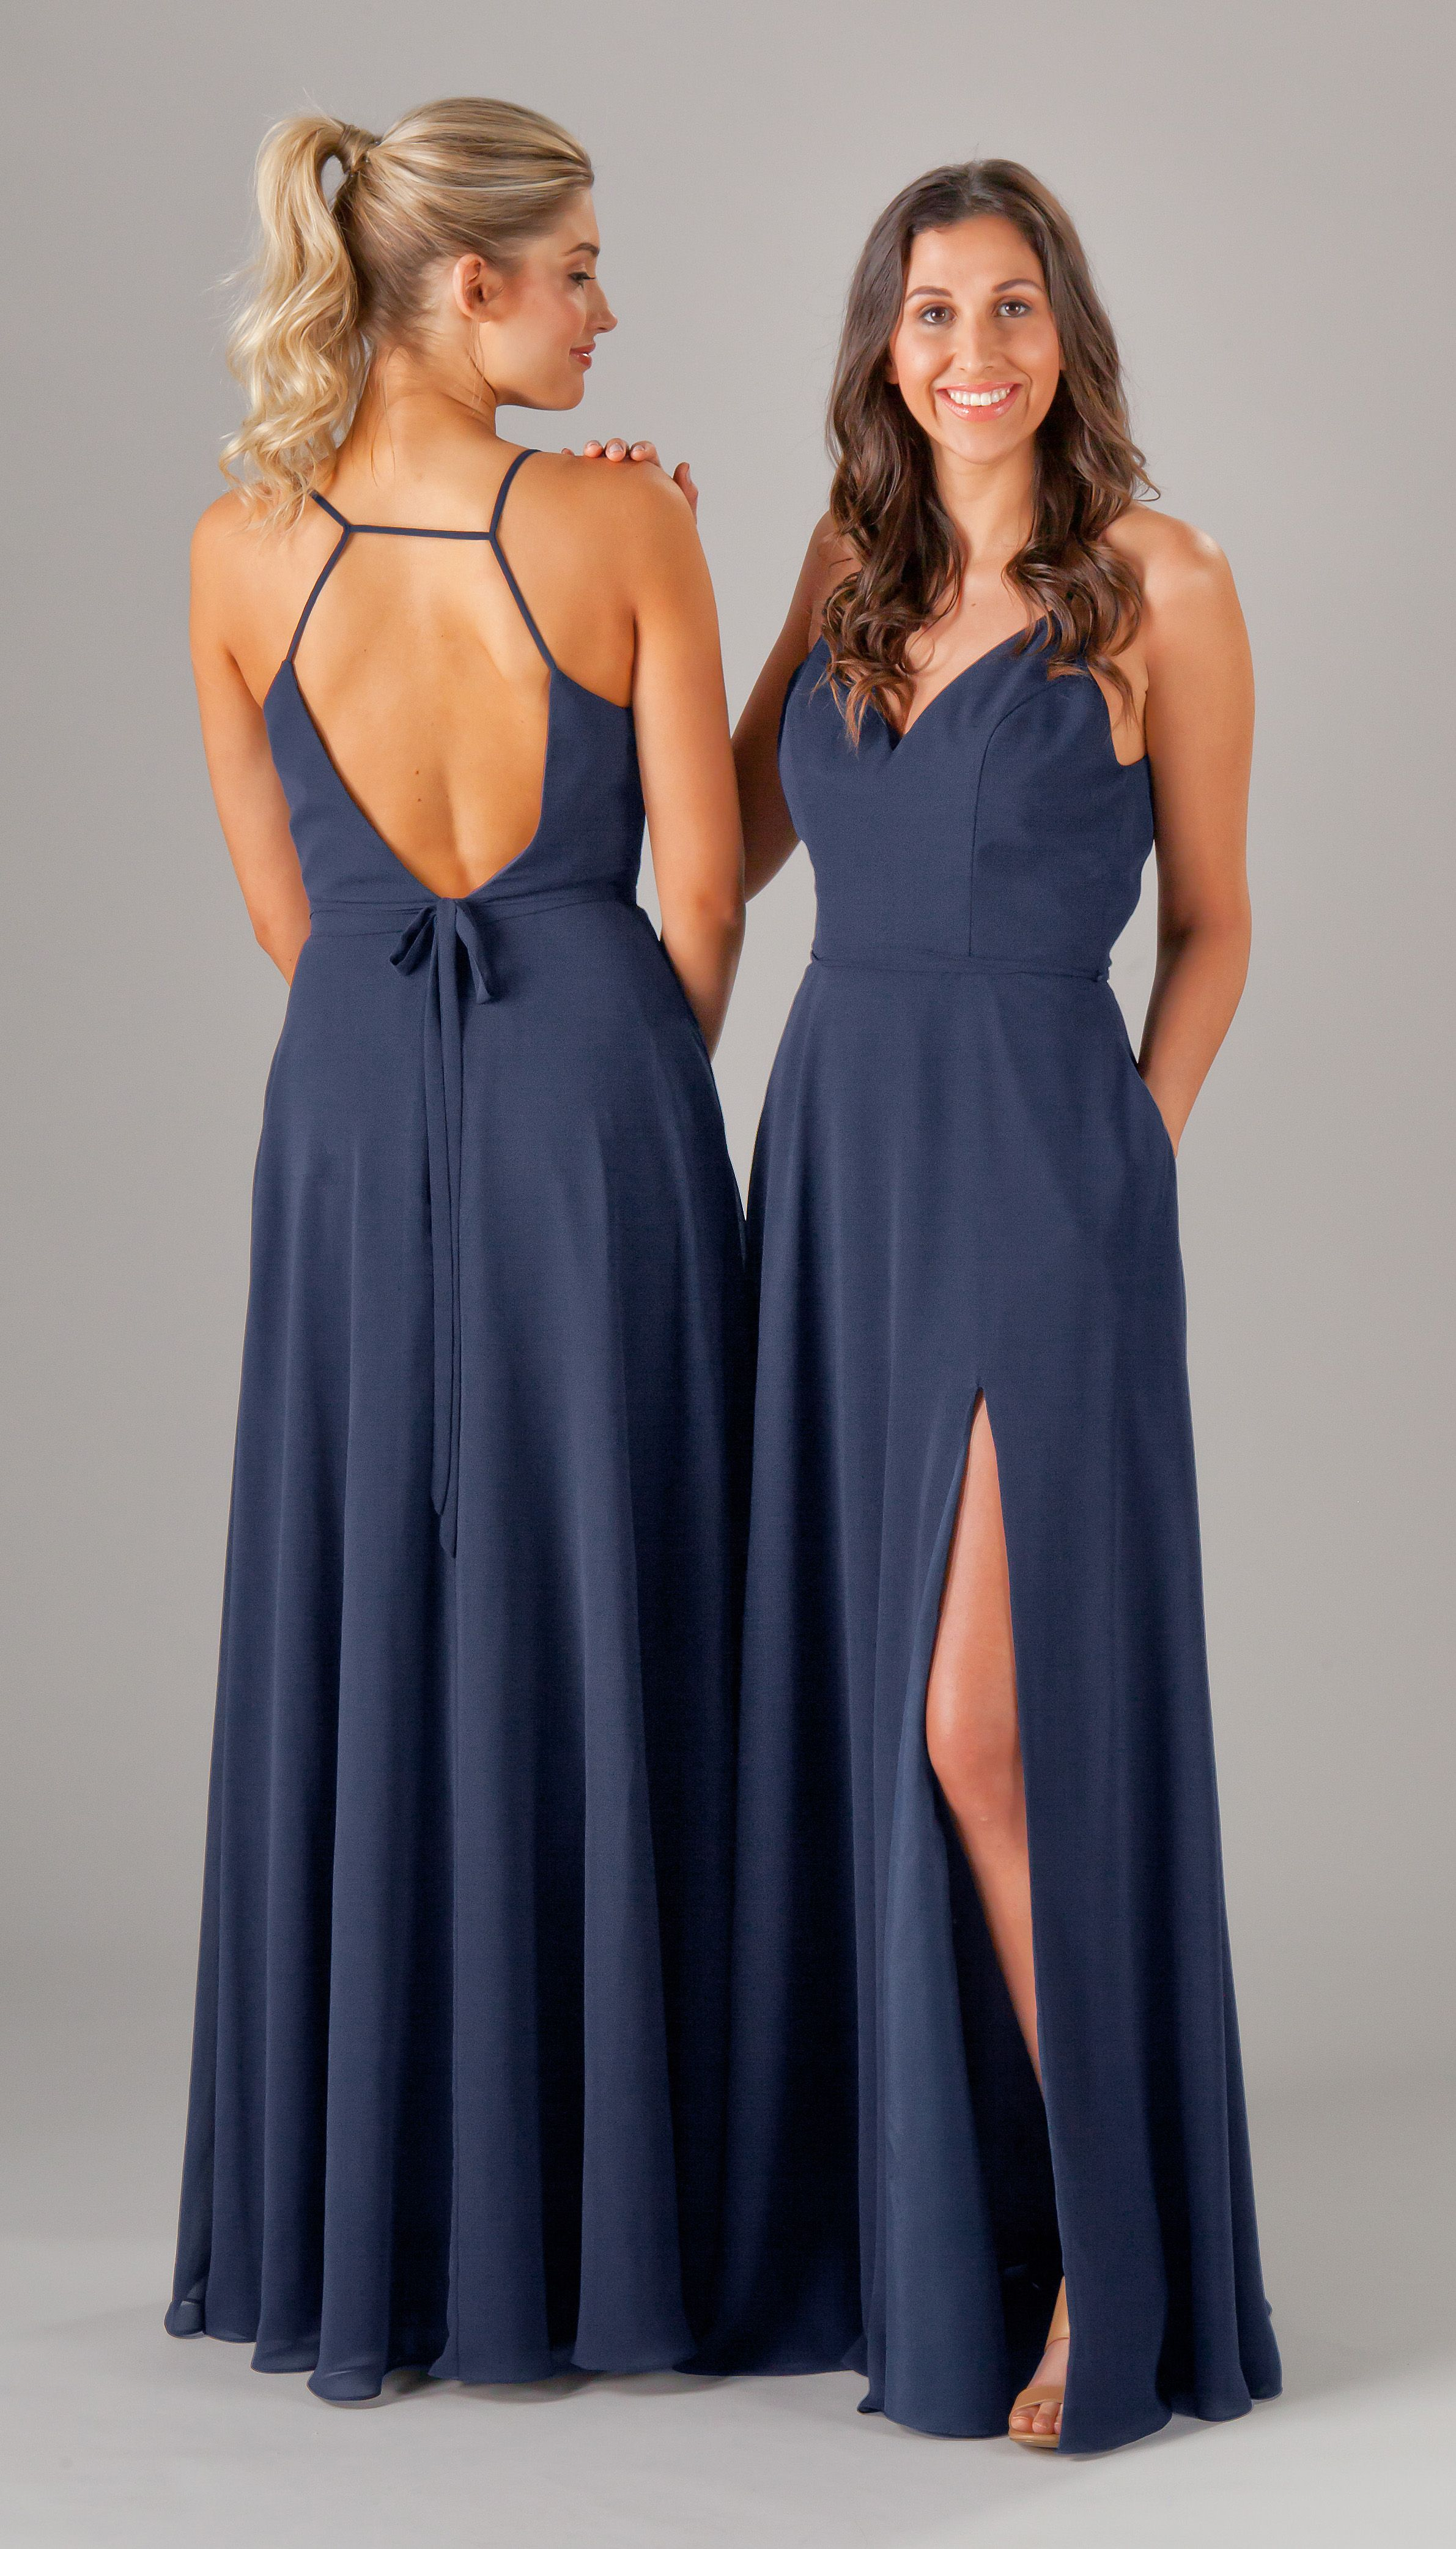 Navy blue bridesmaid dresses are in chiffon dresses are comfortable